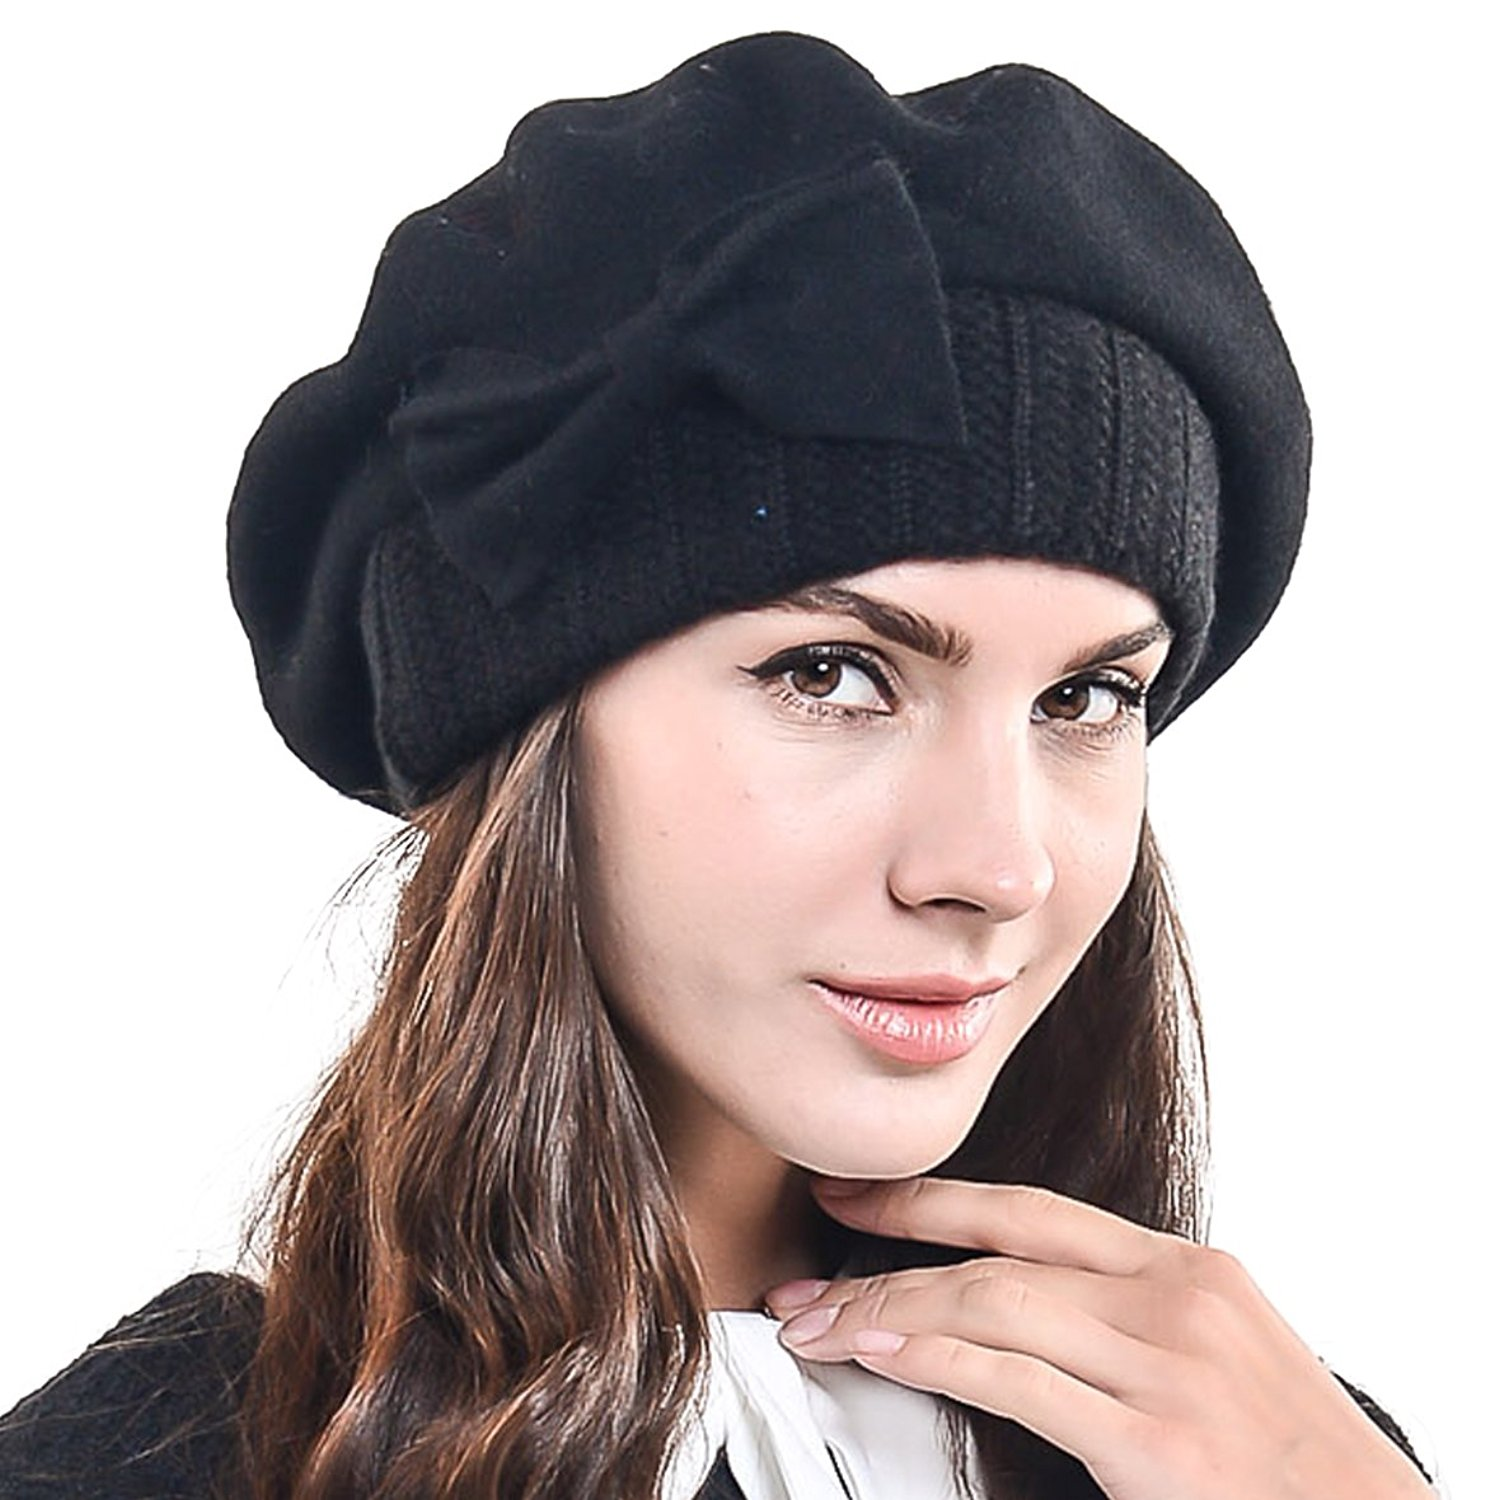 05c892d86f7bb Get Quotations · HISSHE Lady French Beret Wool Beret Chic Beanie Winter Hat  with Bow